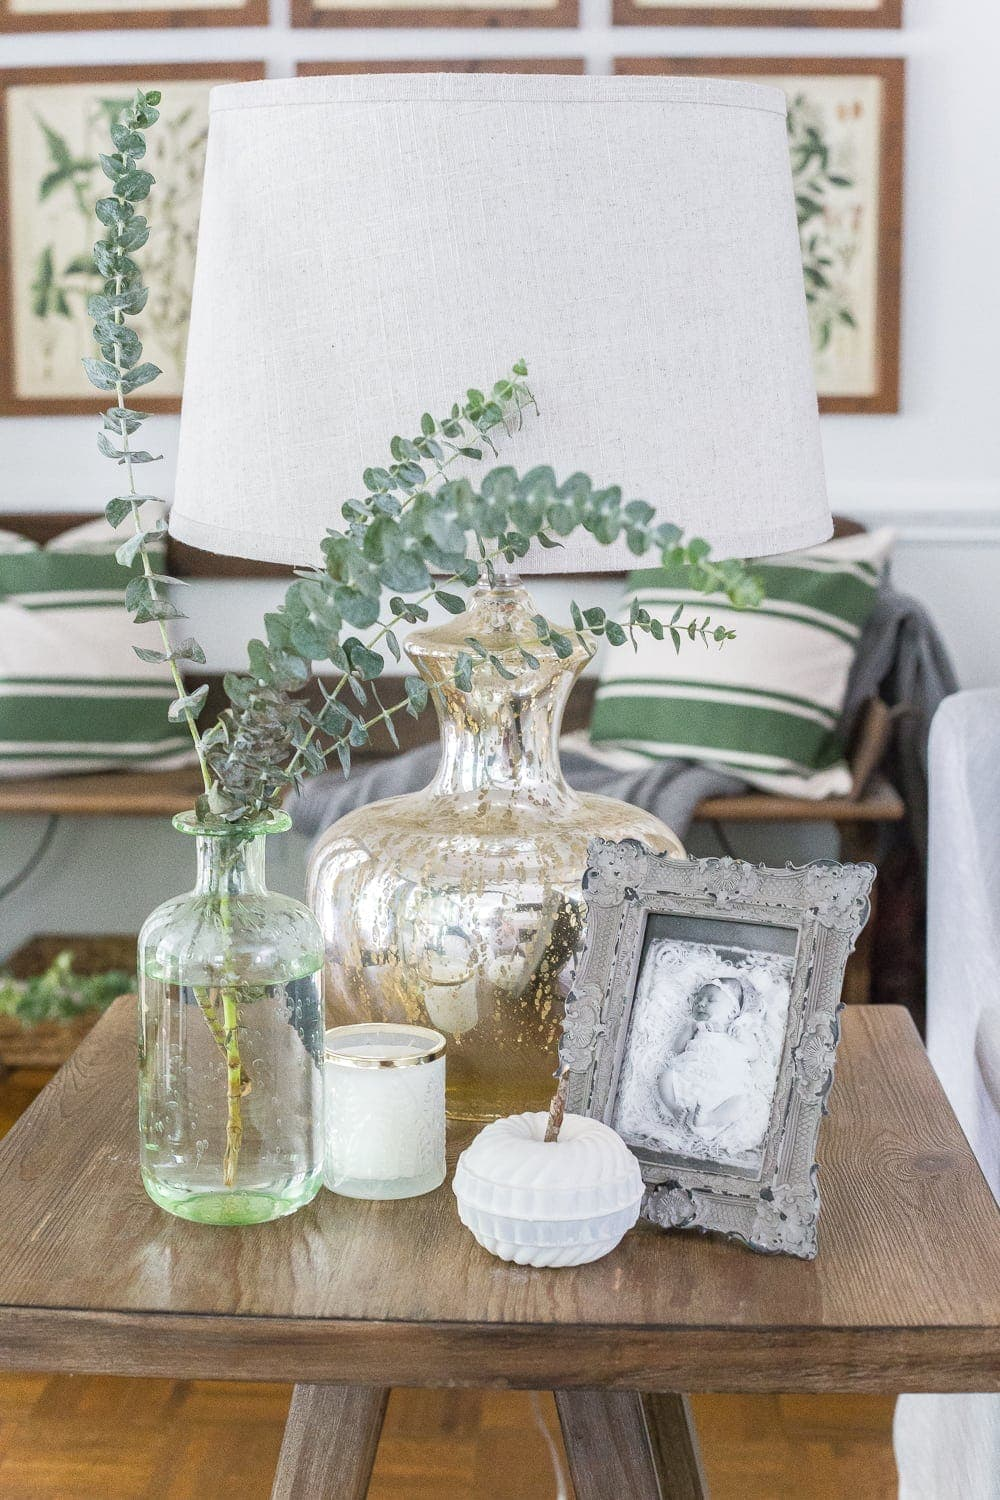 Neutral fall decor on an end table